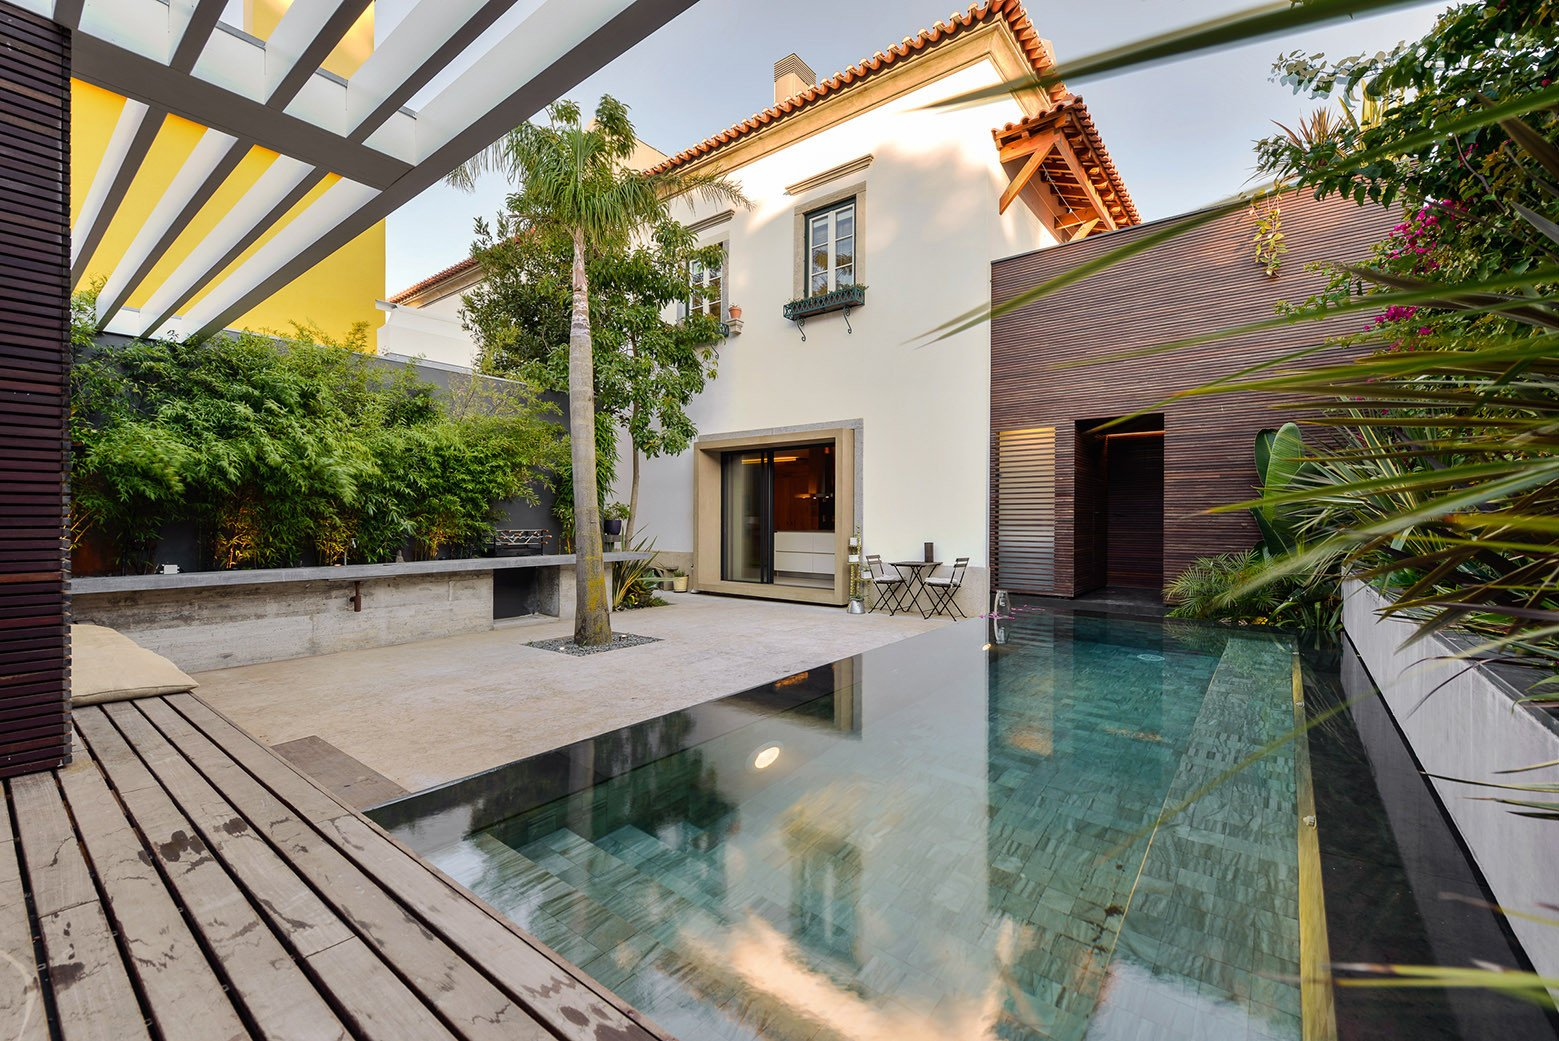 Outdoor, Small, Back Yard, Trees, Decking, Gardens, and Swimming The result is a bright, Portuguese home designed in a clean, formal style, where contemporary interiors exist in harmony with the house's historical shell.  Best Outdoor Gardens Decking Photos from An Architect Renovates His 1920s Home in Portugal, While Preserving the Exterior Shell